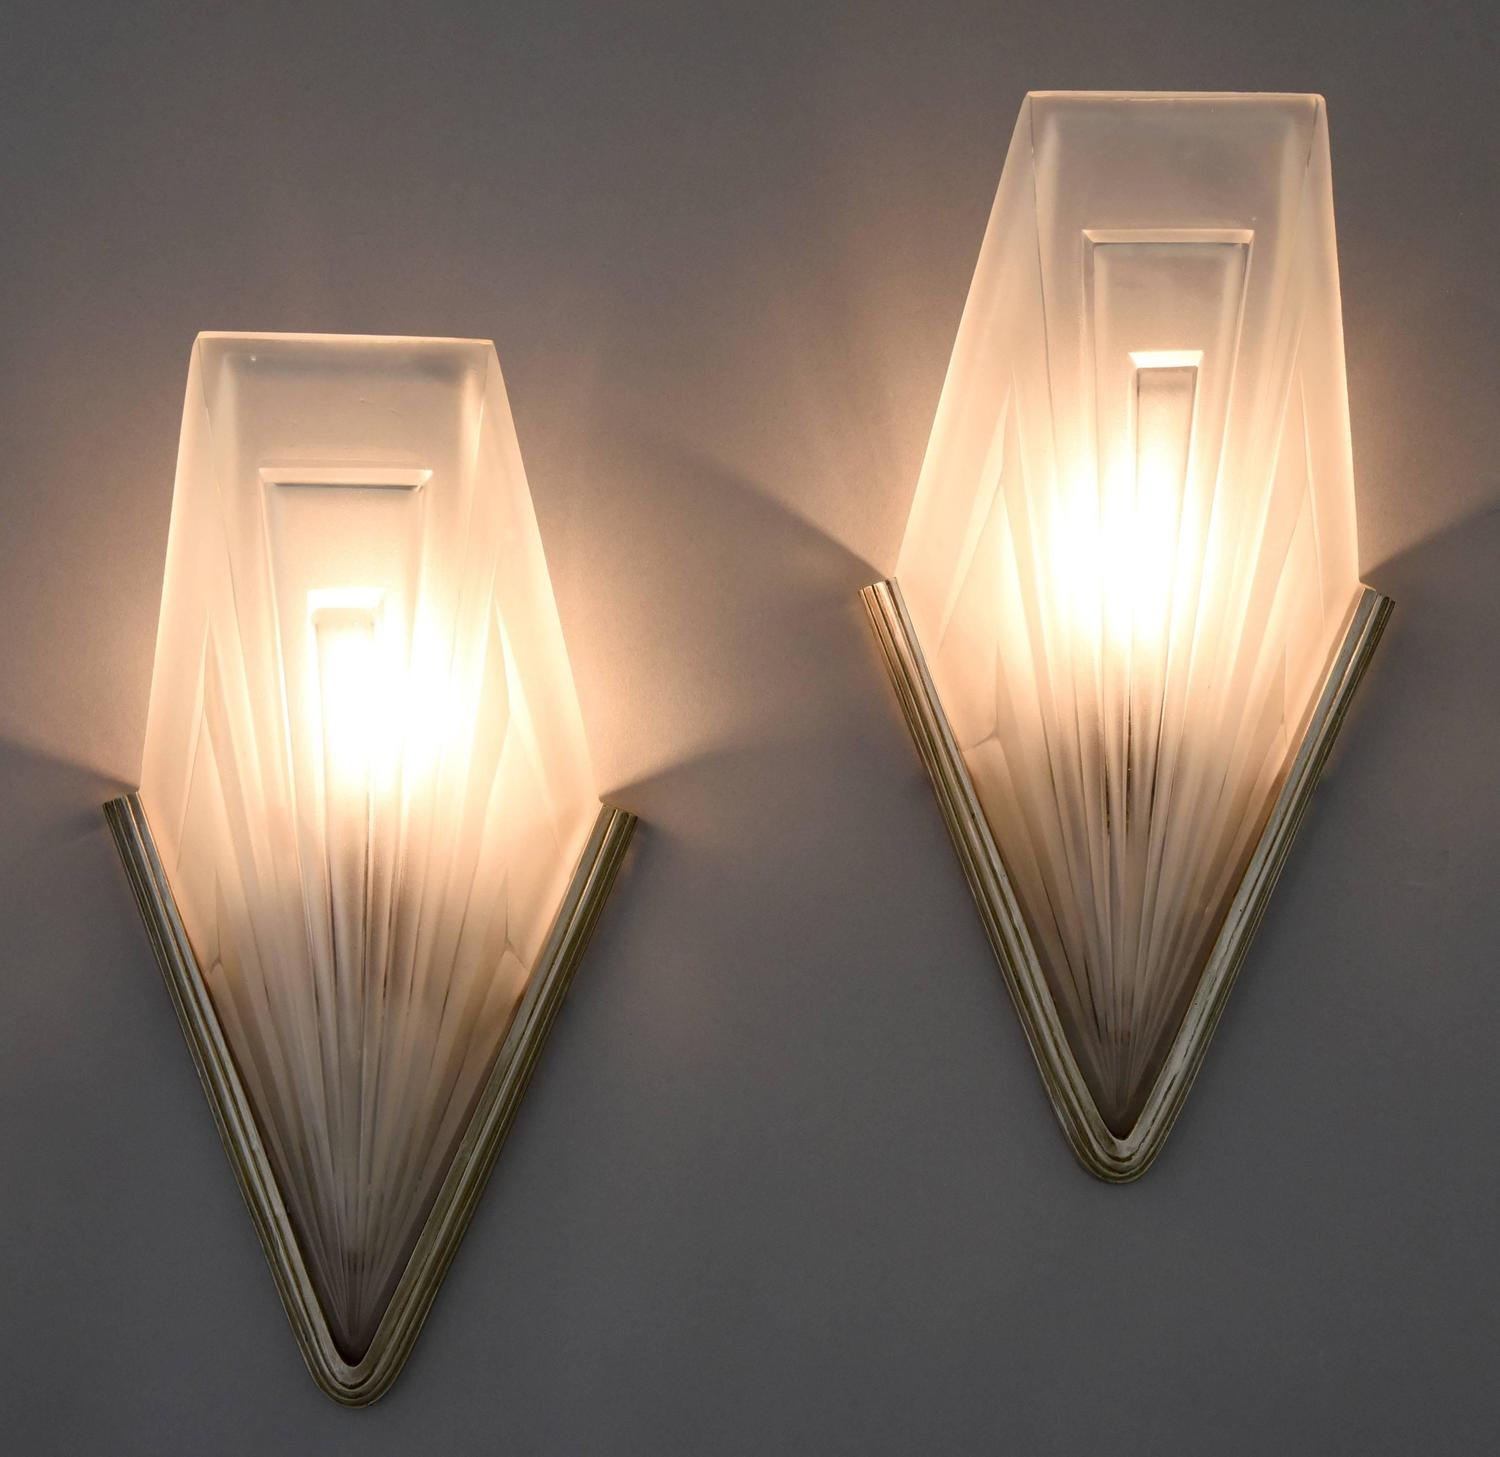 Bronze Glass Wall Lights : French Art Deco Bronze and Glass Wall Lights by Degu?, 1930 For Sale at 1stdibs